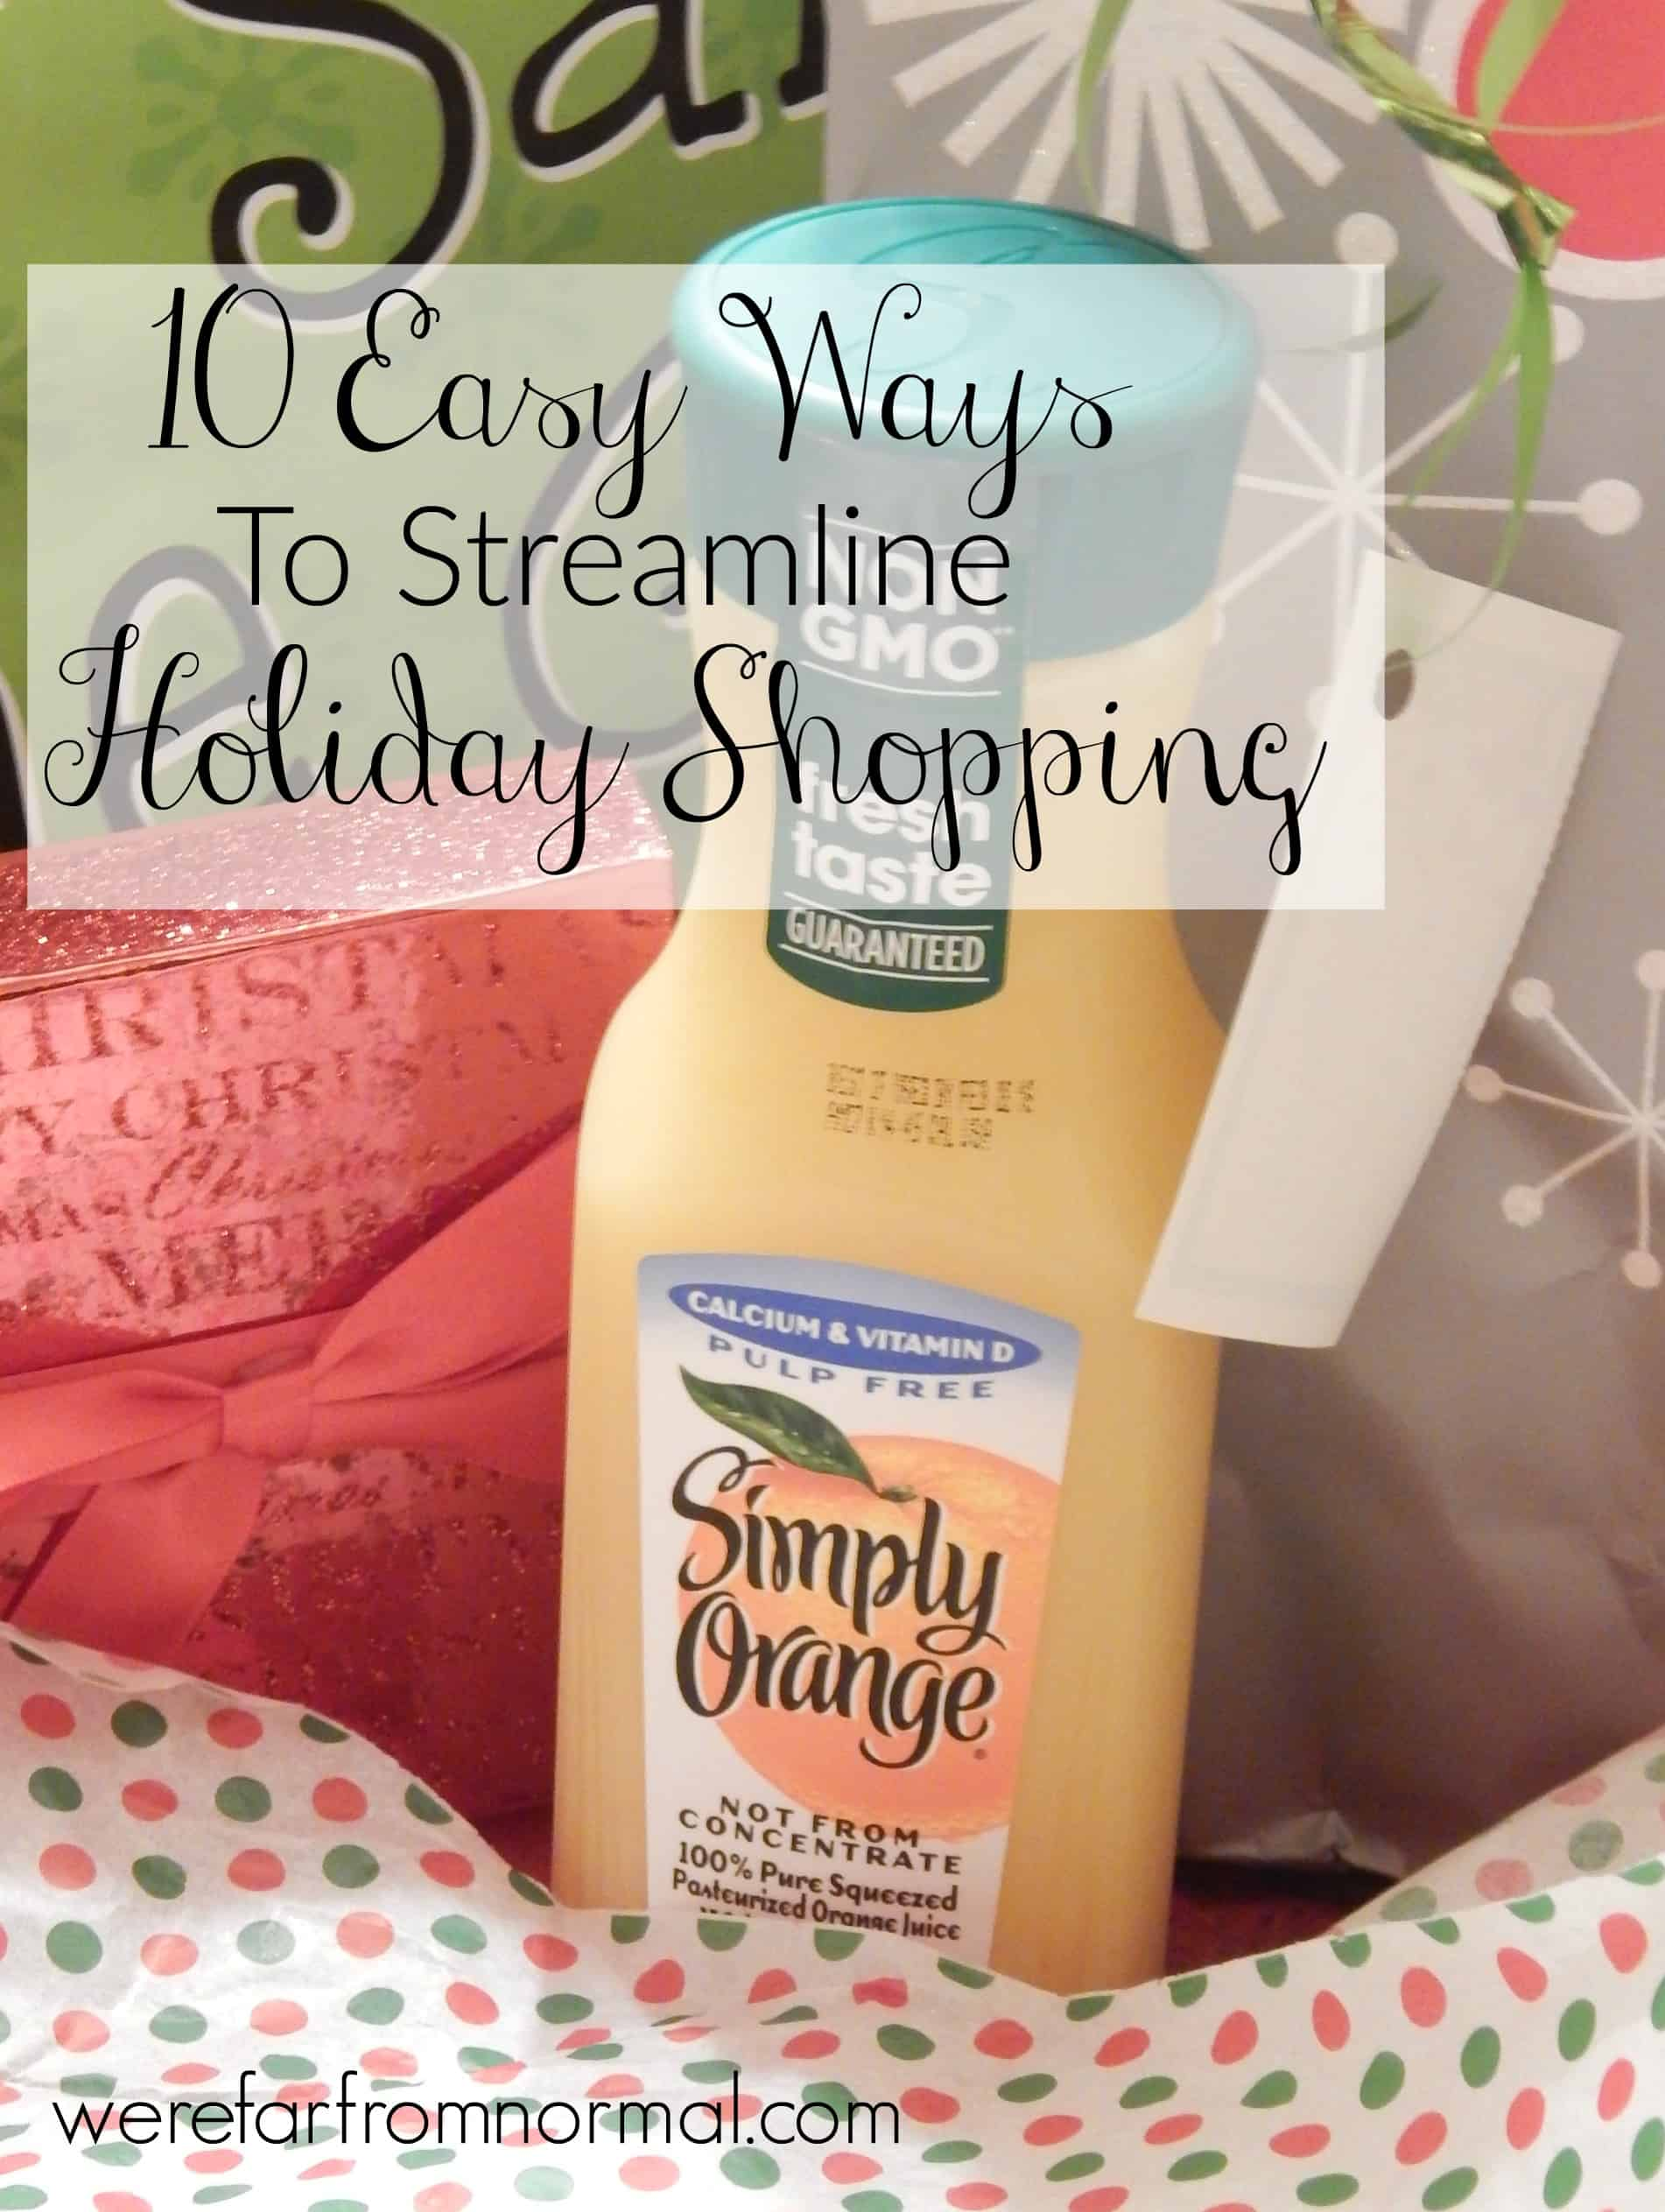 10 Easy Ways to Streamline Your Holiday Shopping